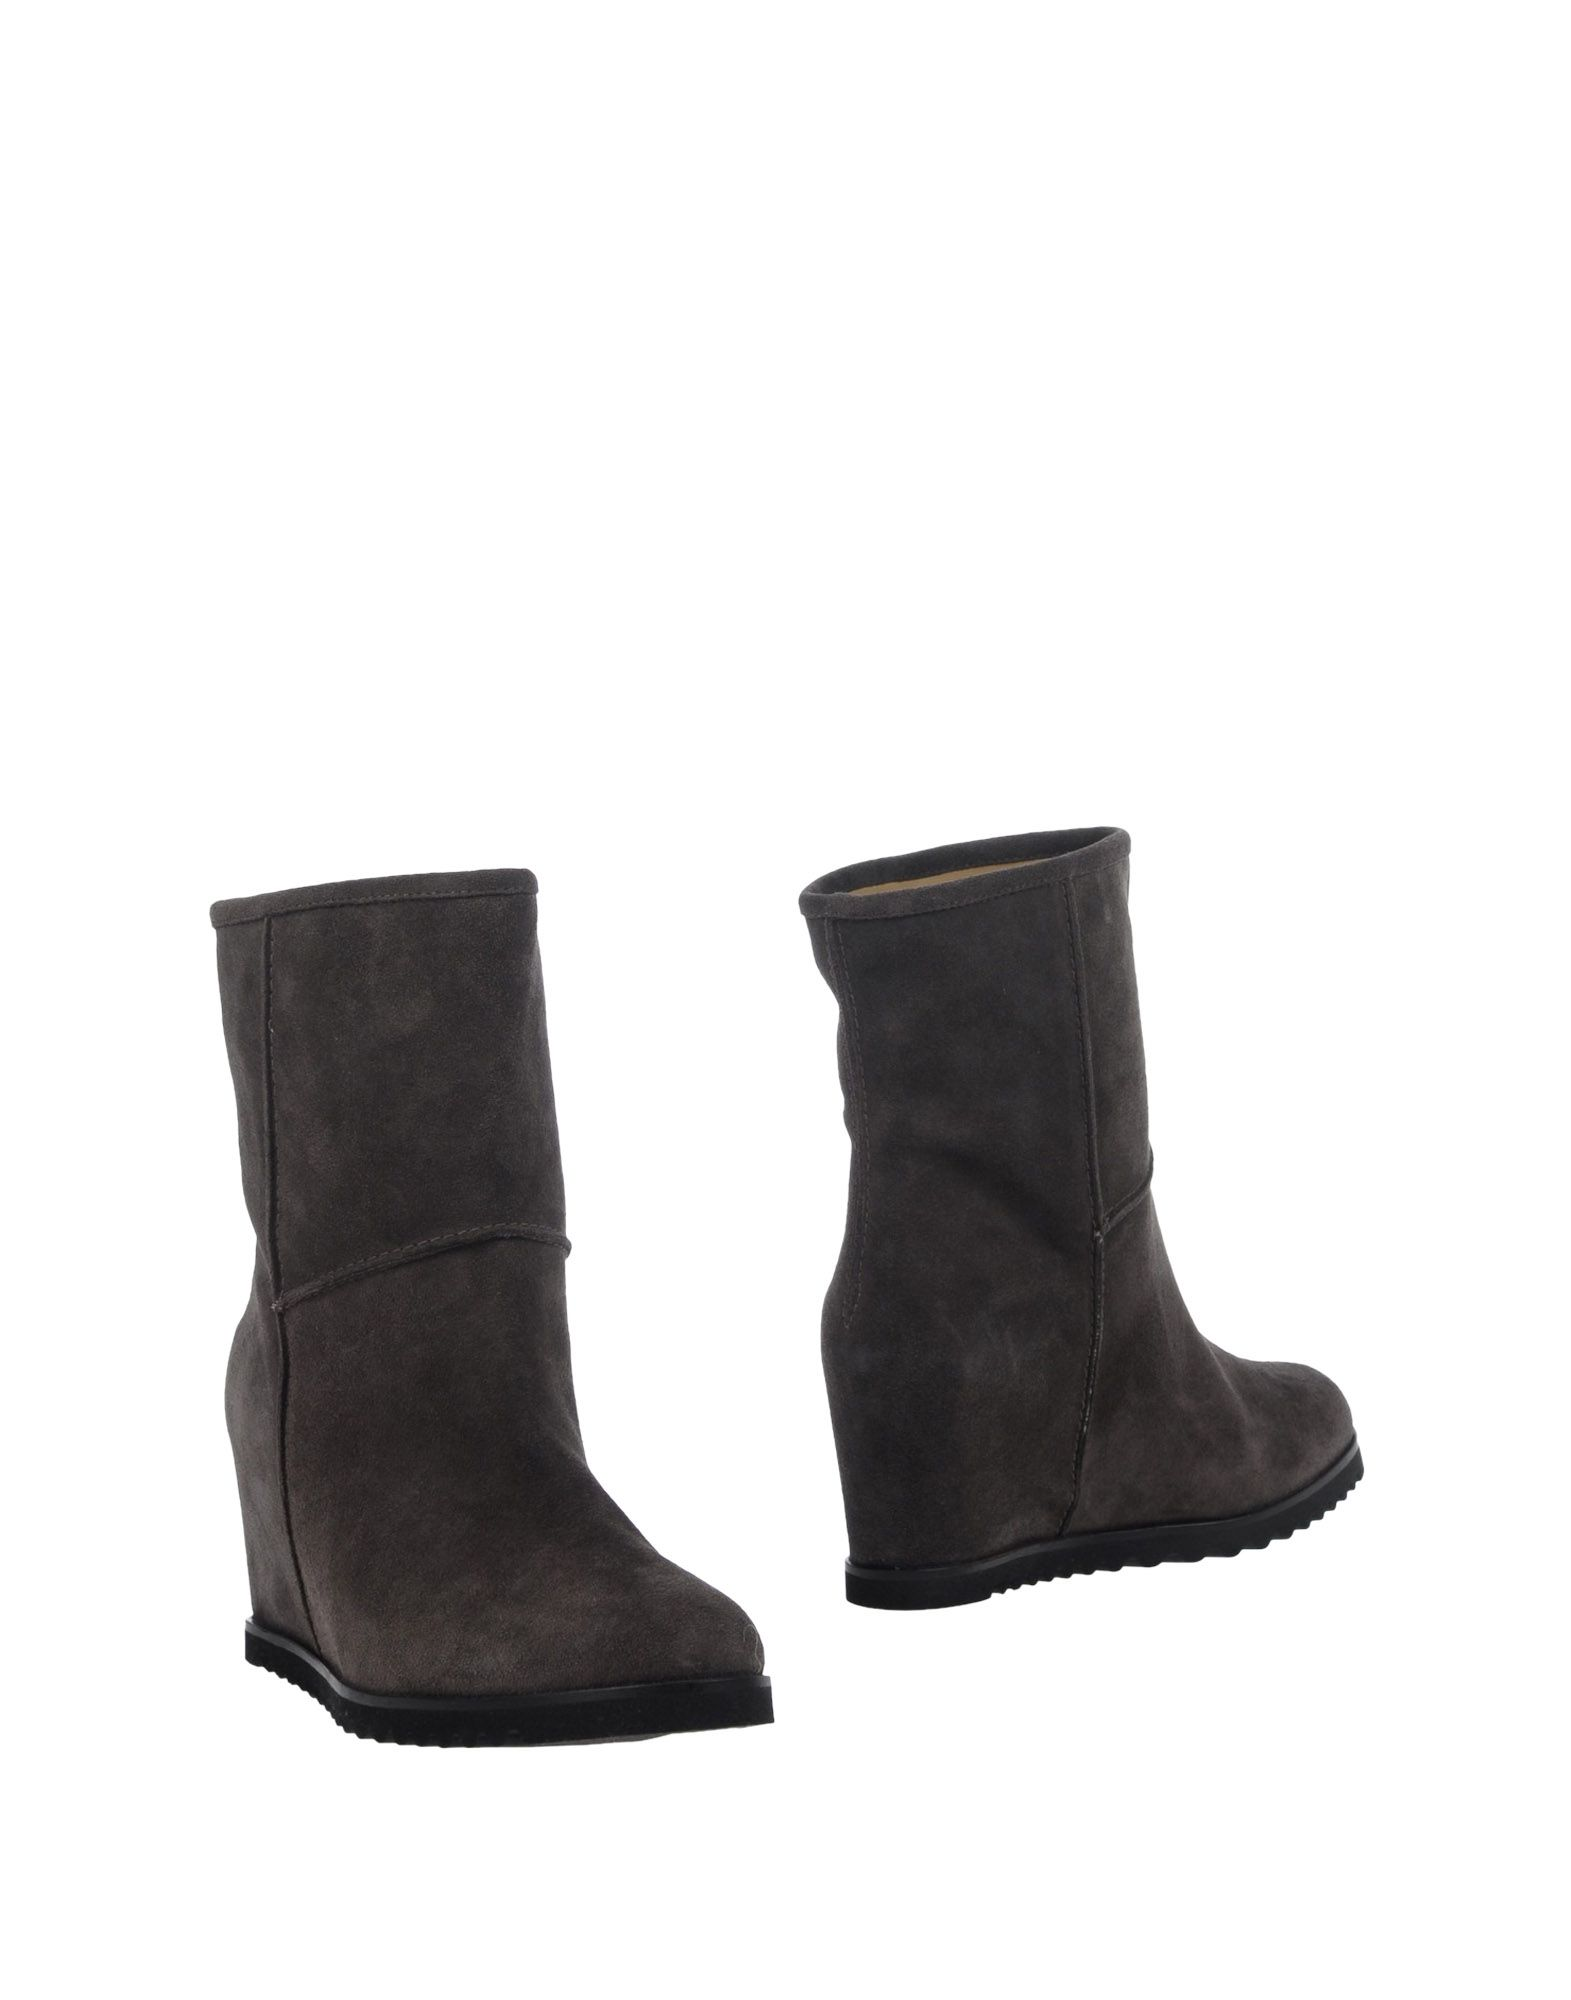 Bottine Fabio Rusconi Femme - Bottines Fabio Rusconi sur